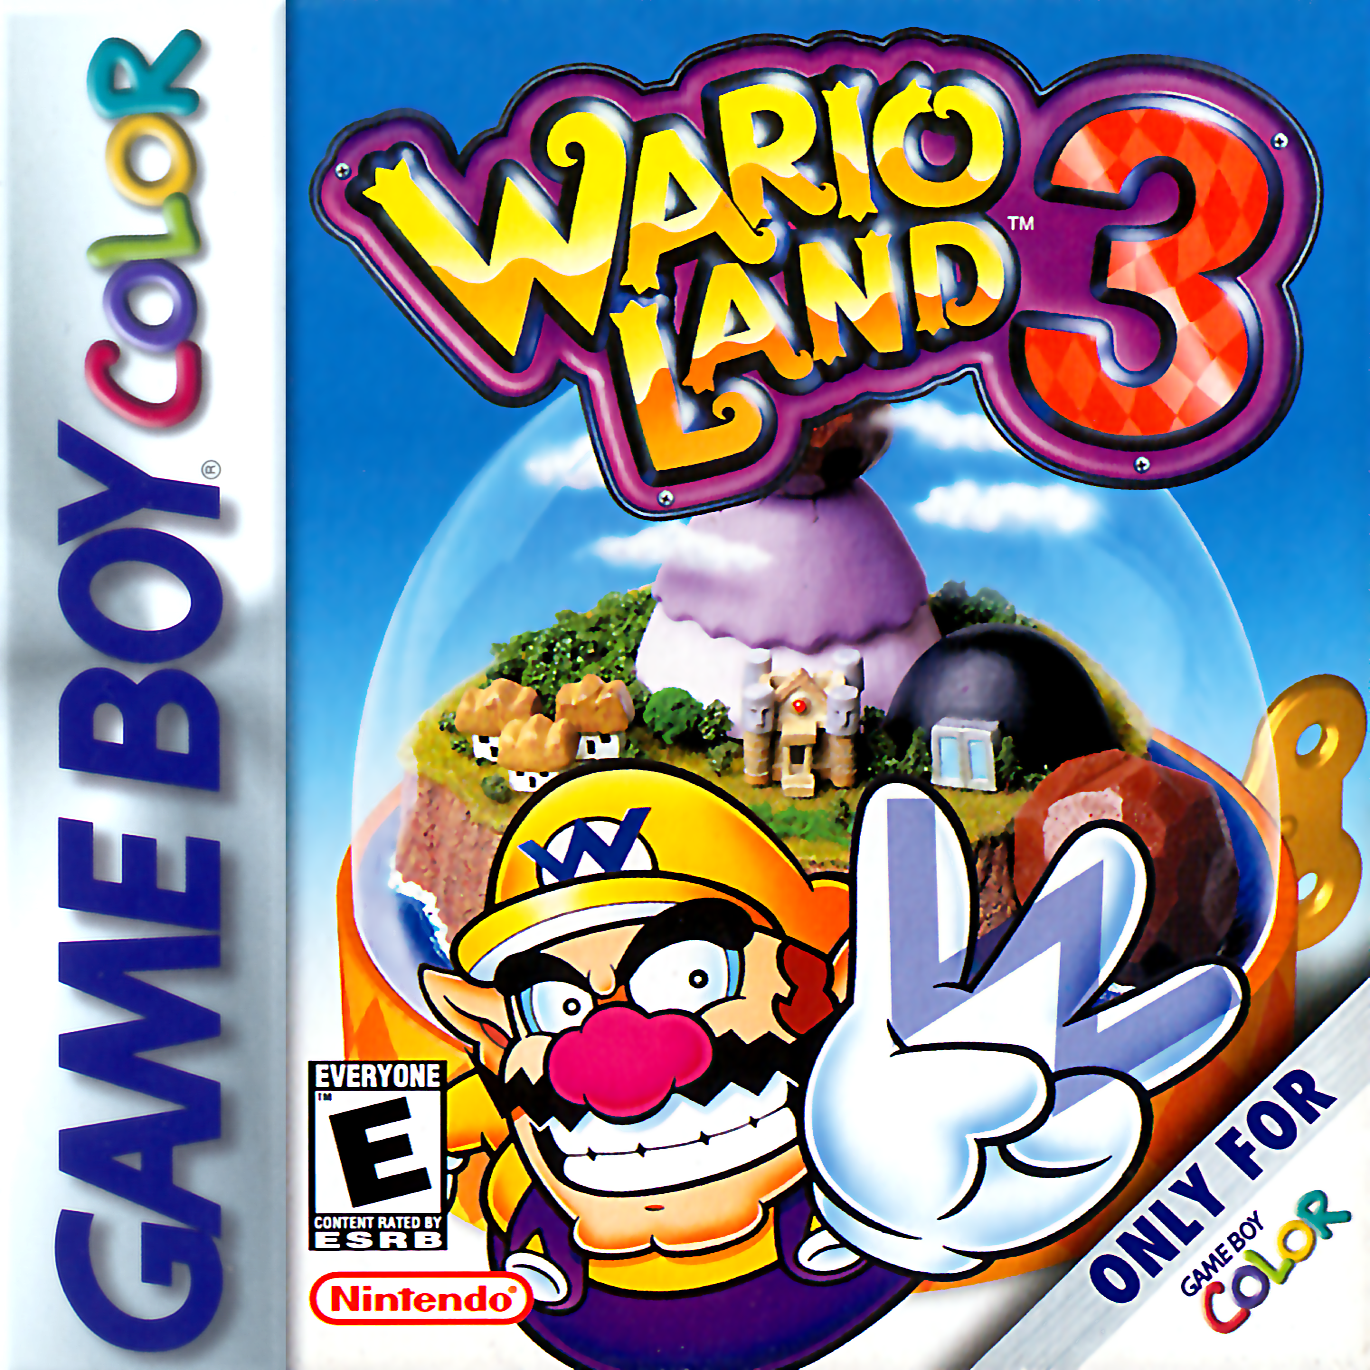 Wario Land 3 Nintendo Game Boy Color cover artwork